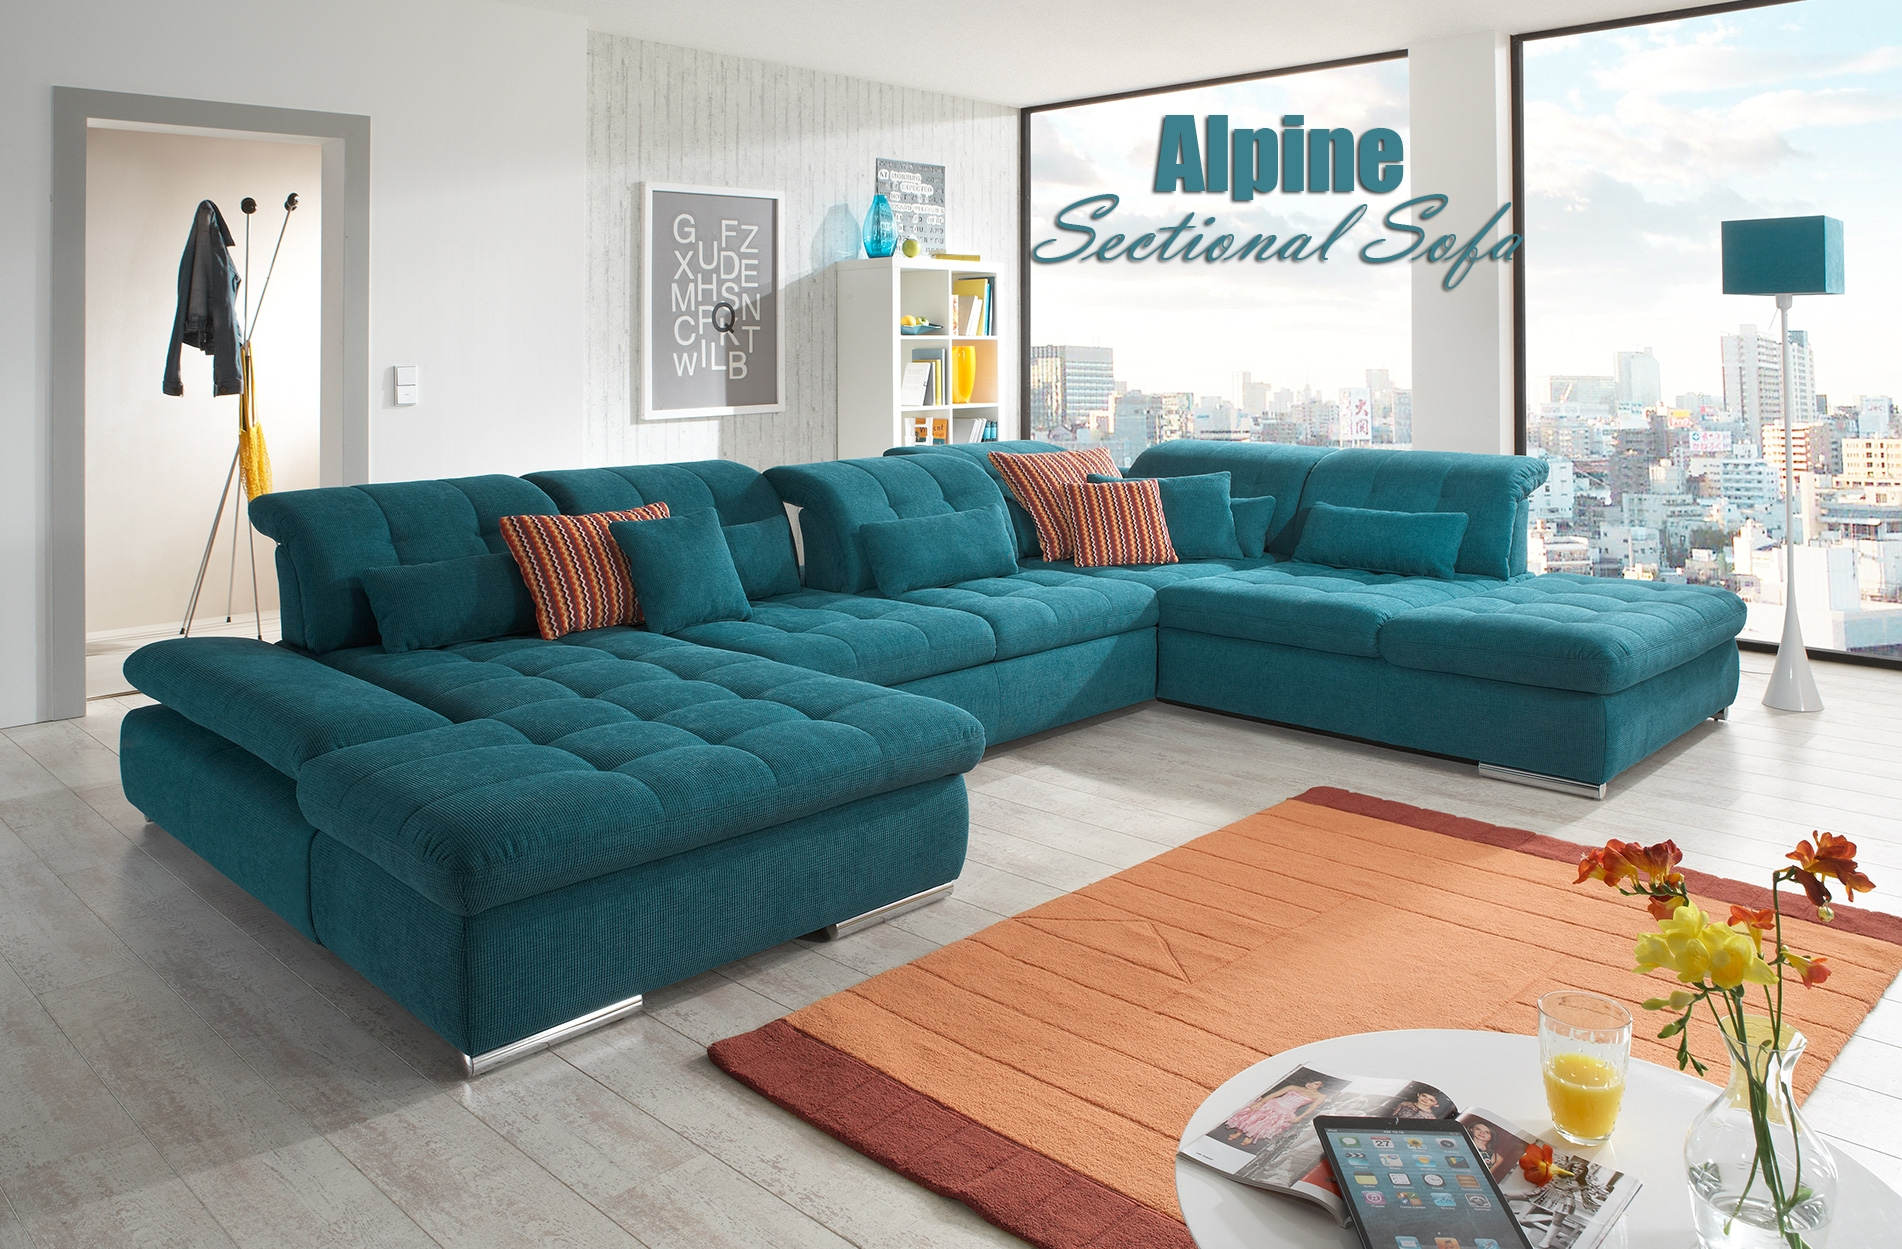 Alpine Sectional Sofa Sleeper With Storage Throughout Colorful Sectional Sofas (View 13 of 15)